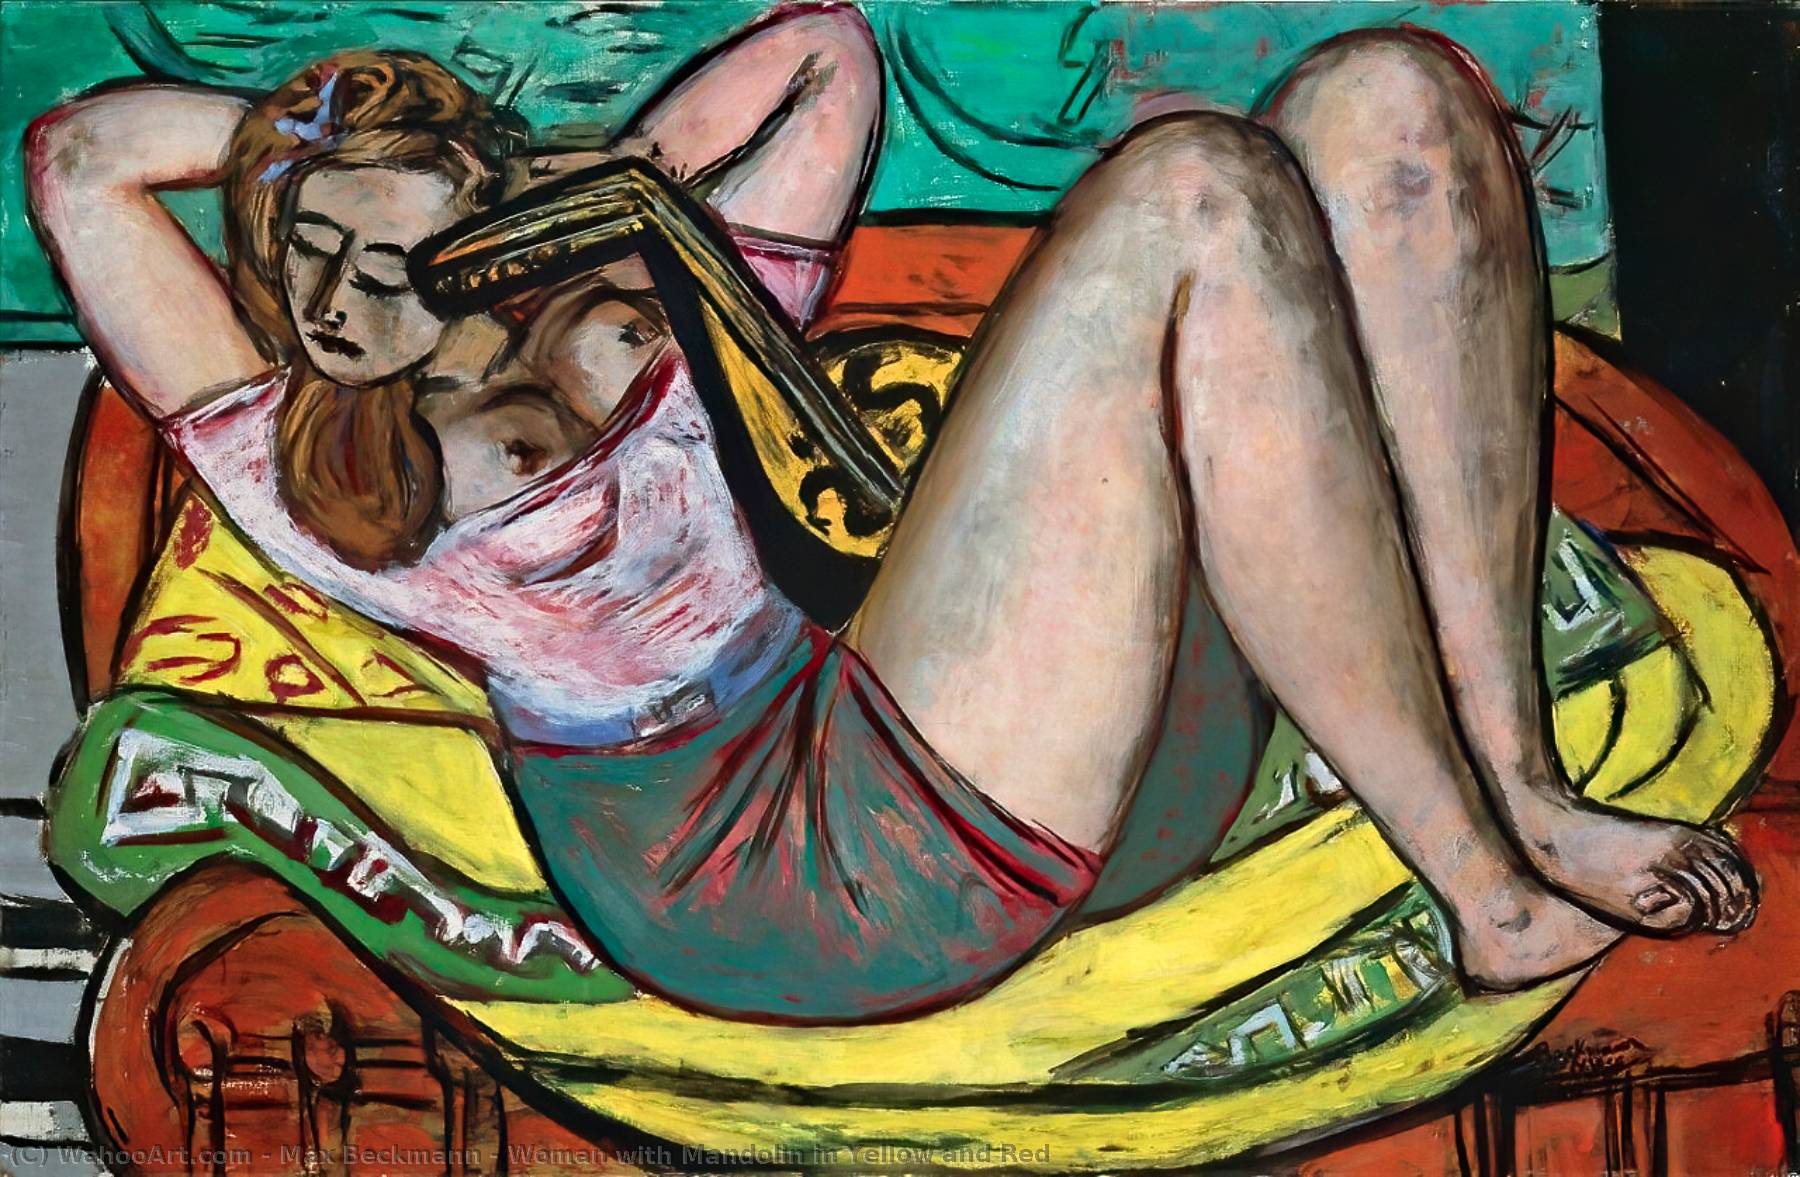 Woman with Mandolin in Yellow and Red by Max Beckmann (1884-1950, Germany) | Famous Paintings Reproductions | WahooArt.com